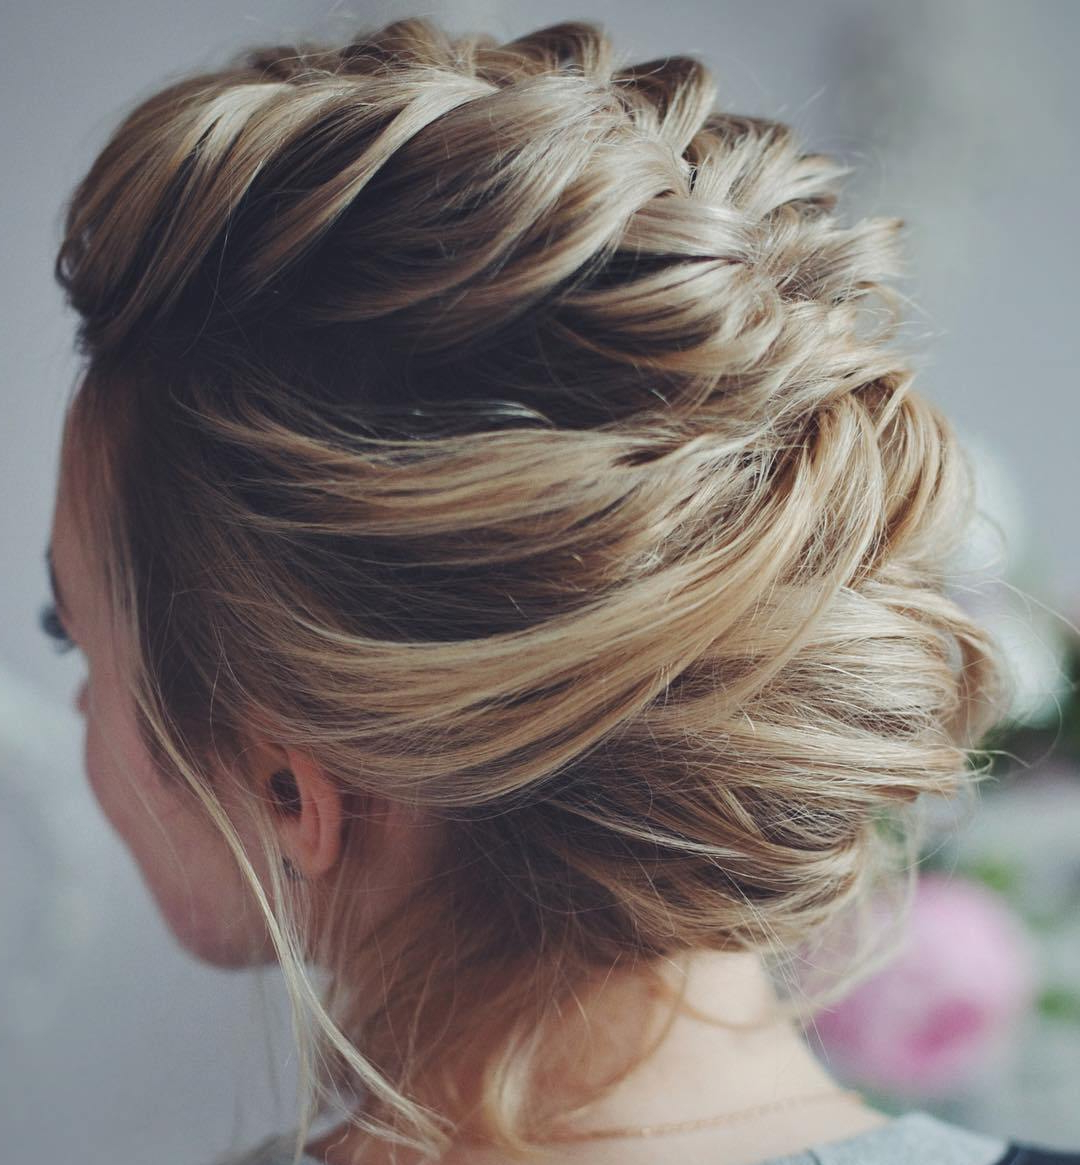 50 Hottest Prom Hairstyles For Short Hair With Popular Braid And Fluffy Bun Prom Hairstyles (Gallery 3 of 20)